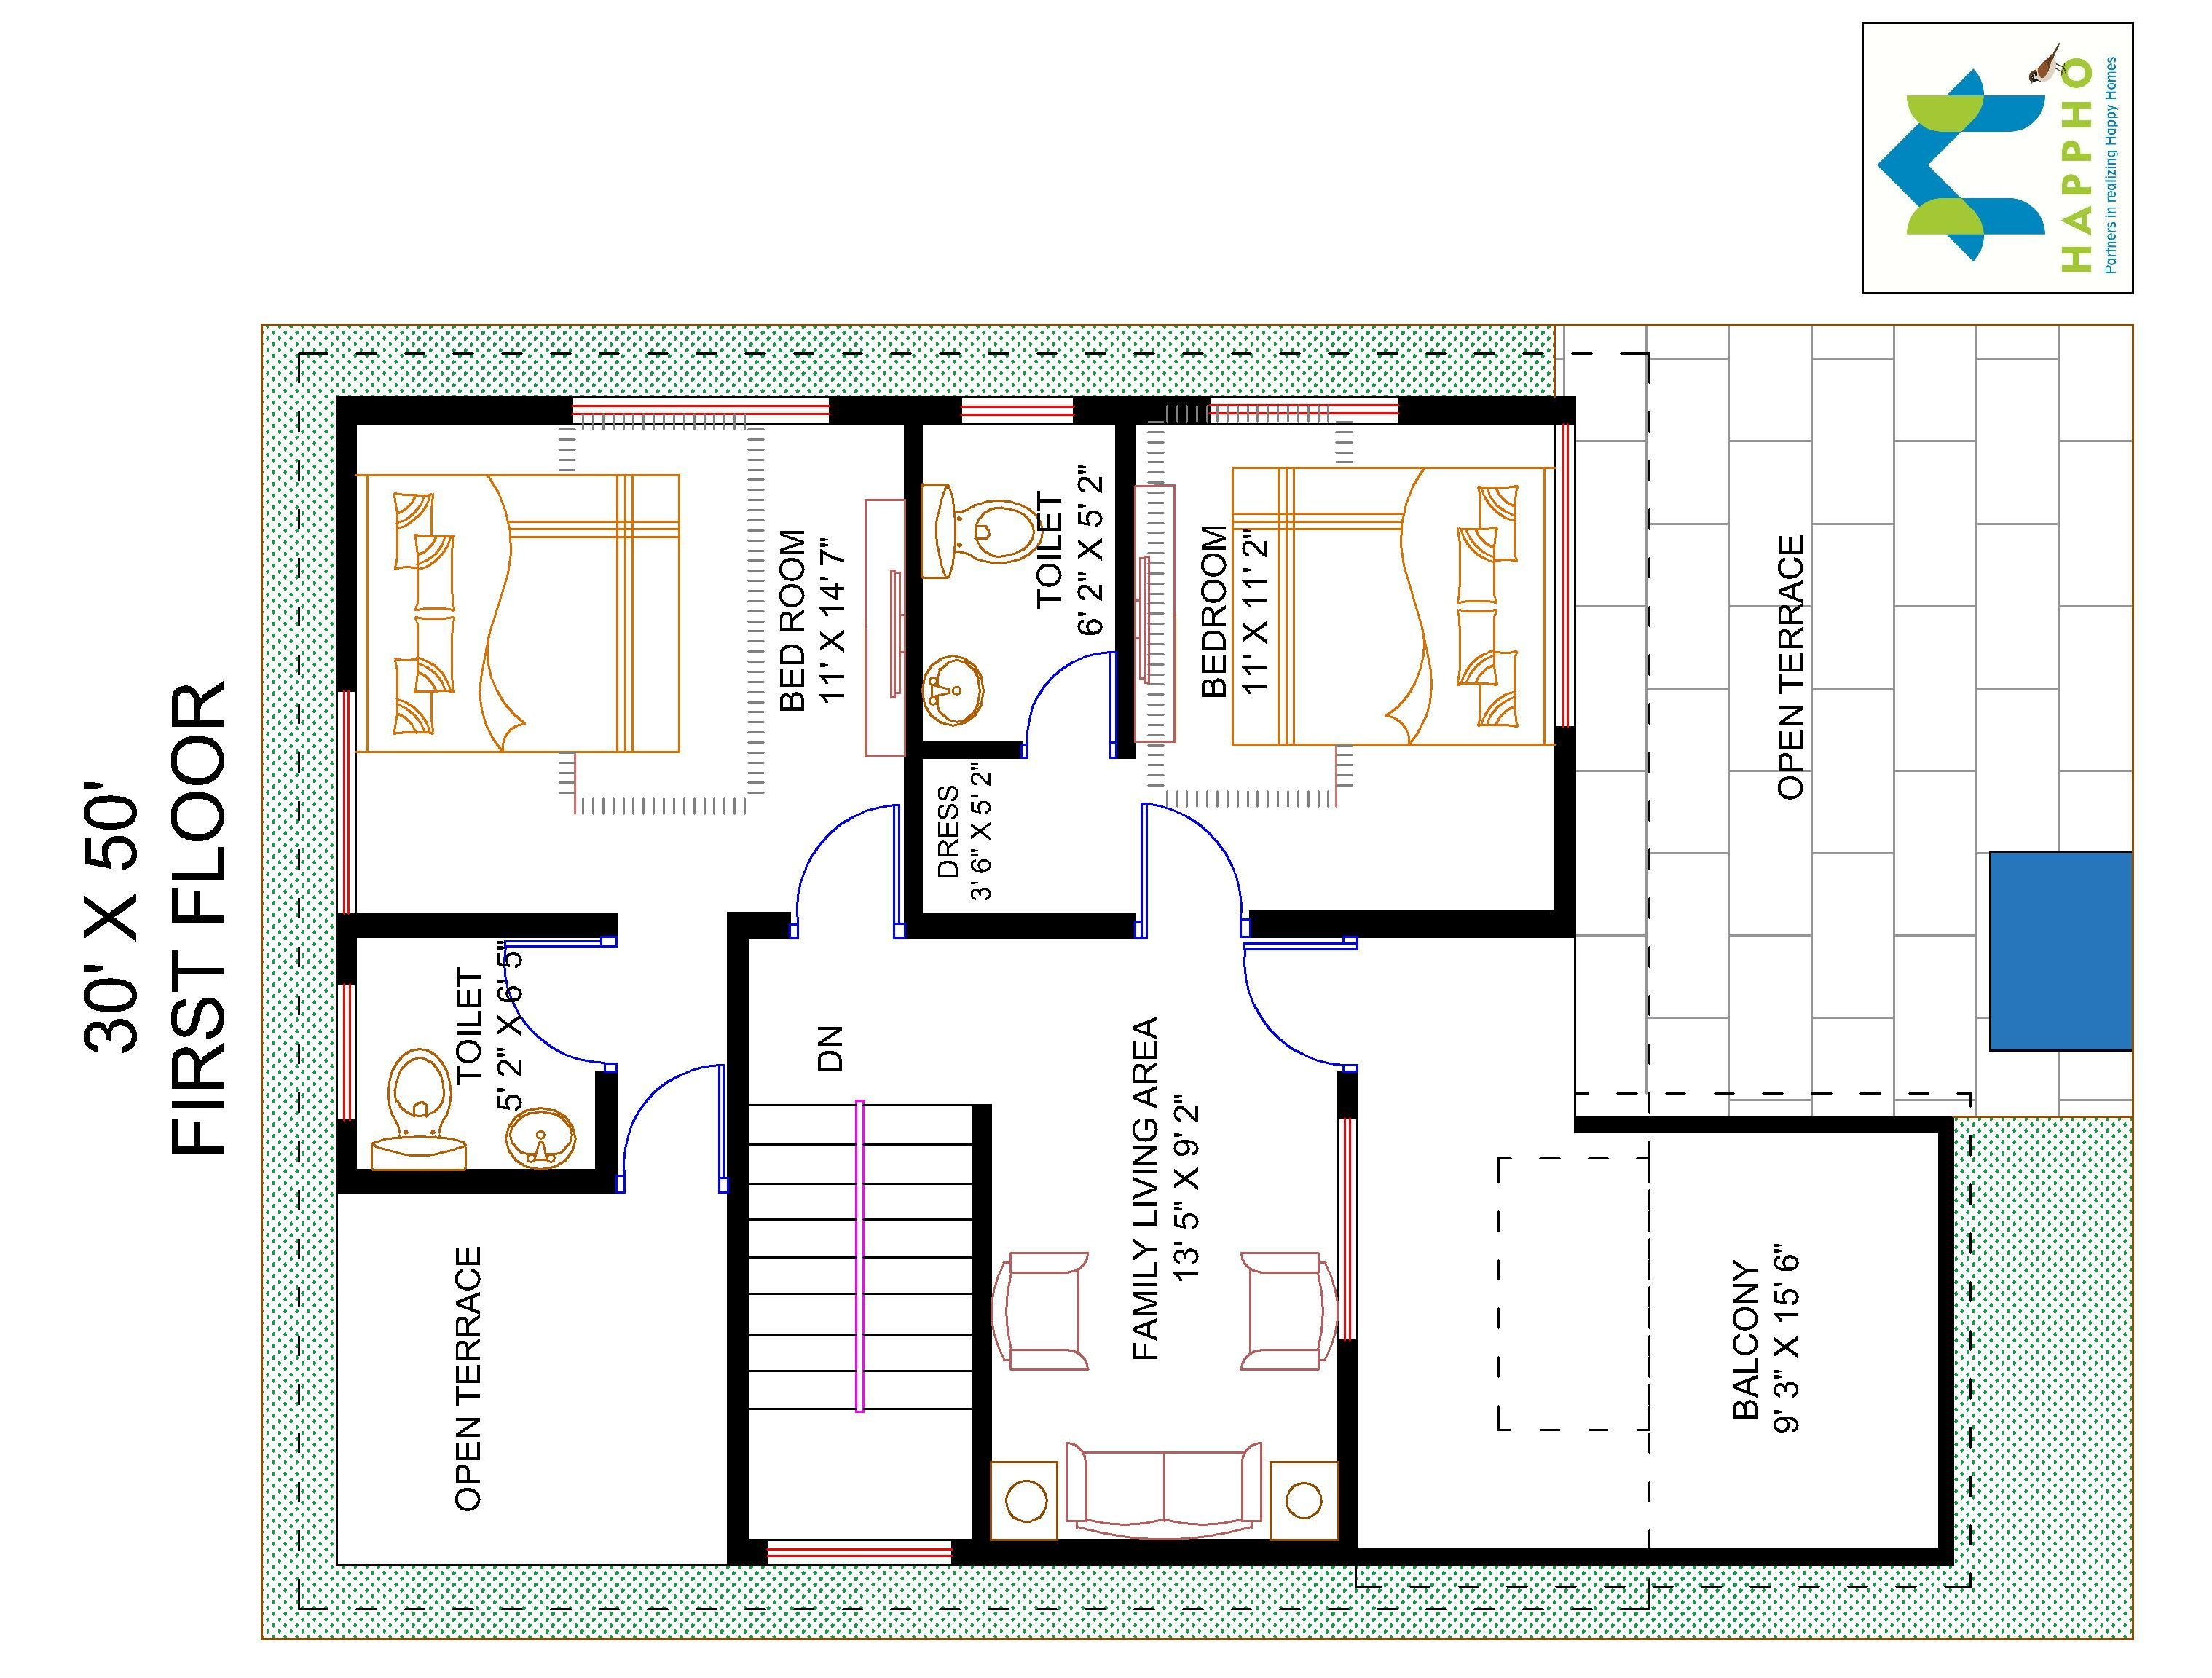 4 bhk floor plan for 30 x 50 plot 1500 square feet 166 for 16 x 50 floor plans